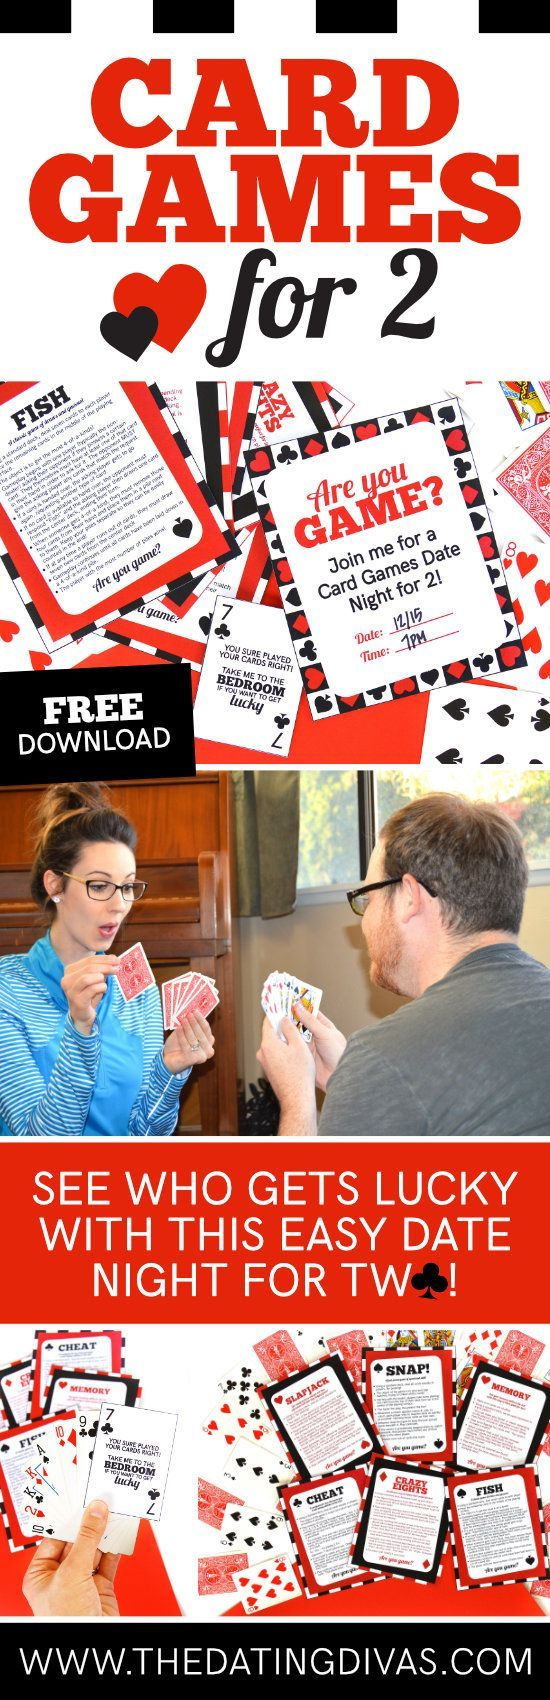 Card Games Date Night makes for the quickest and easiest